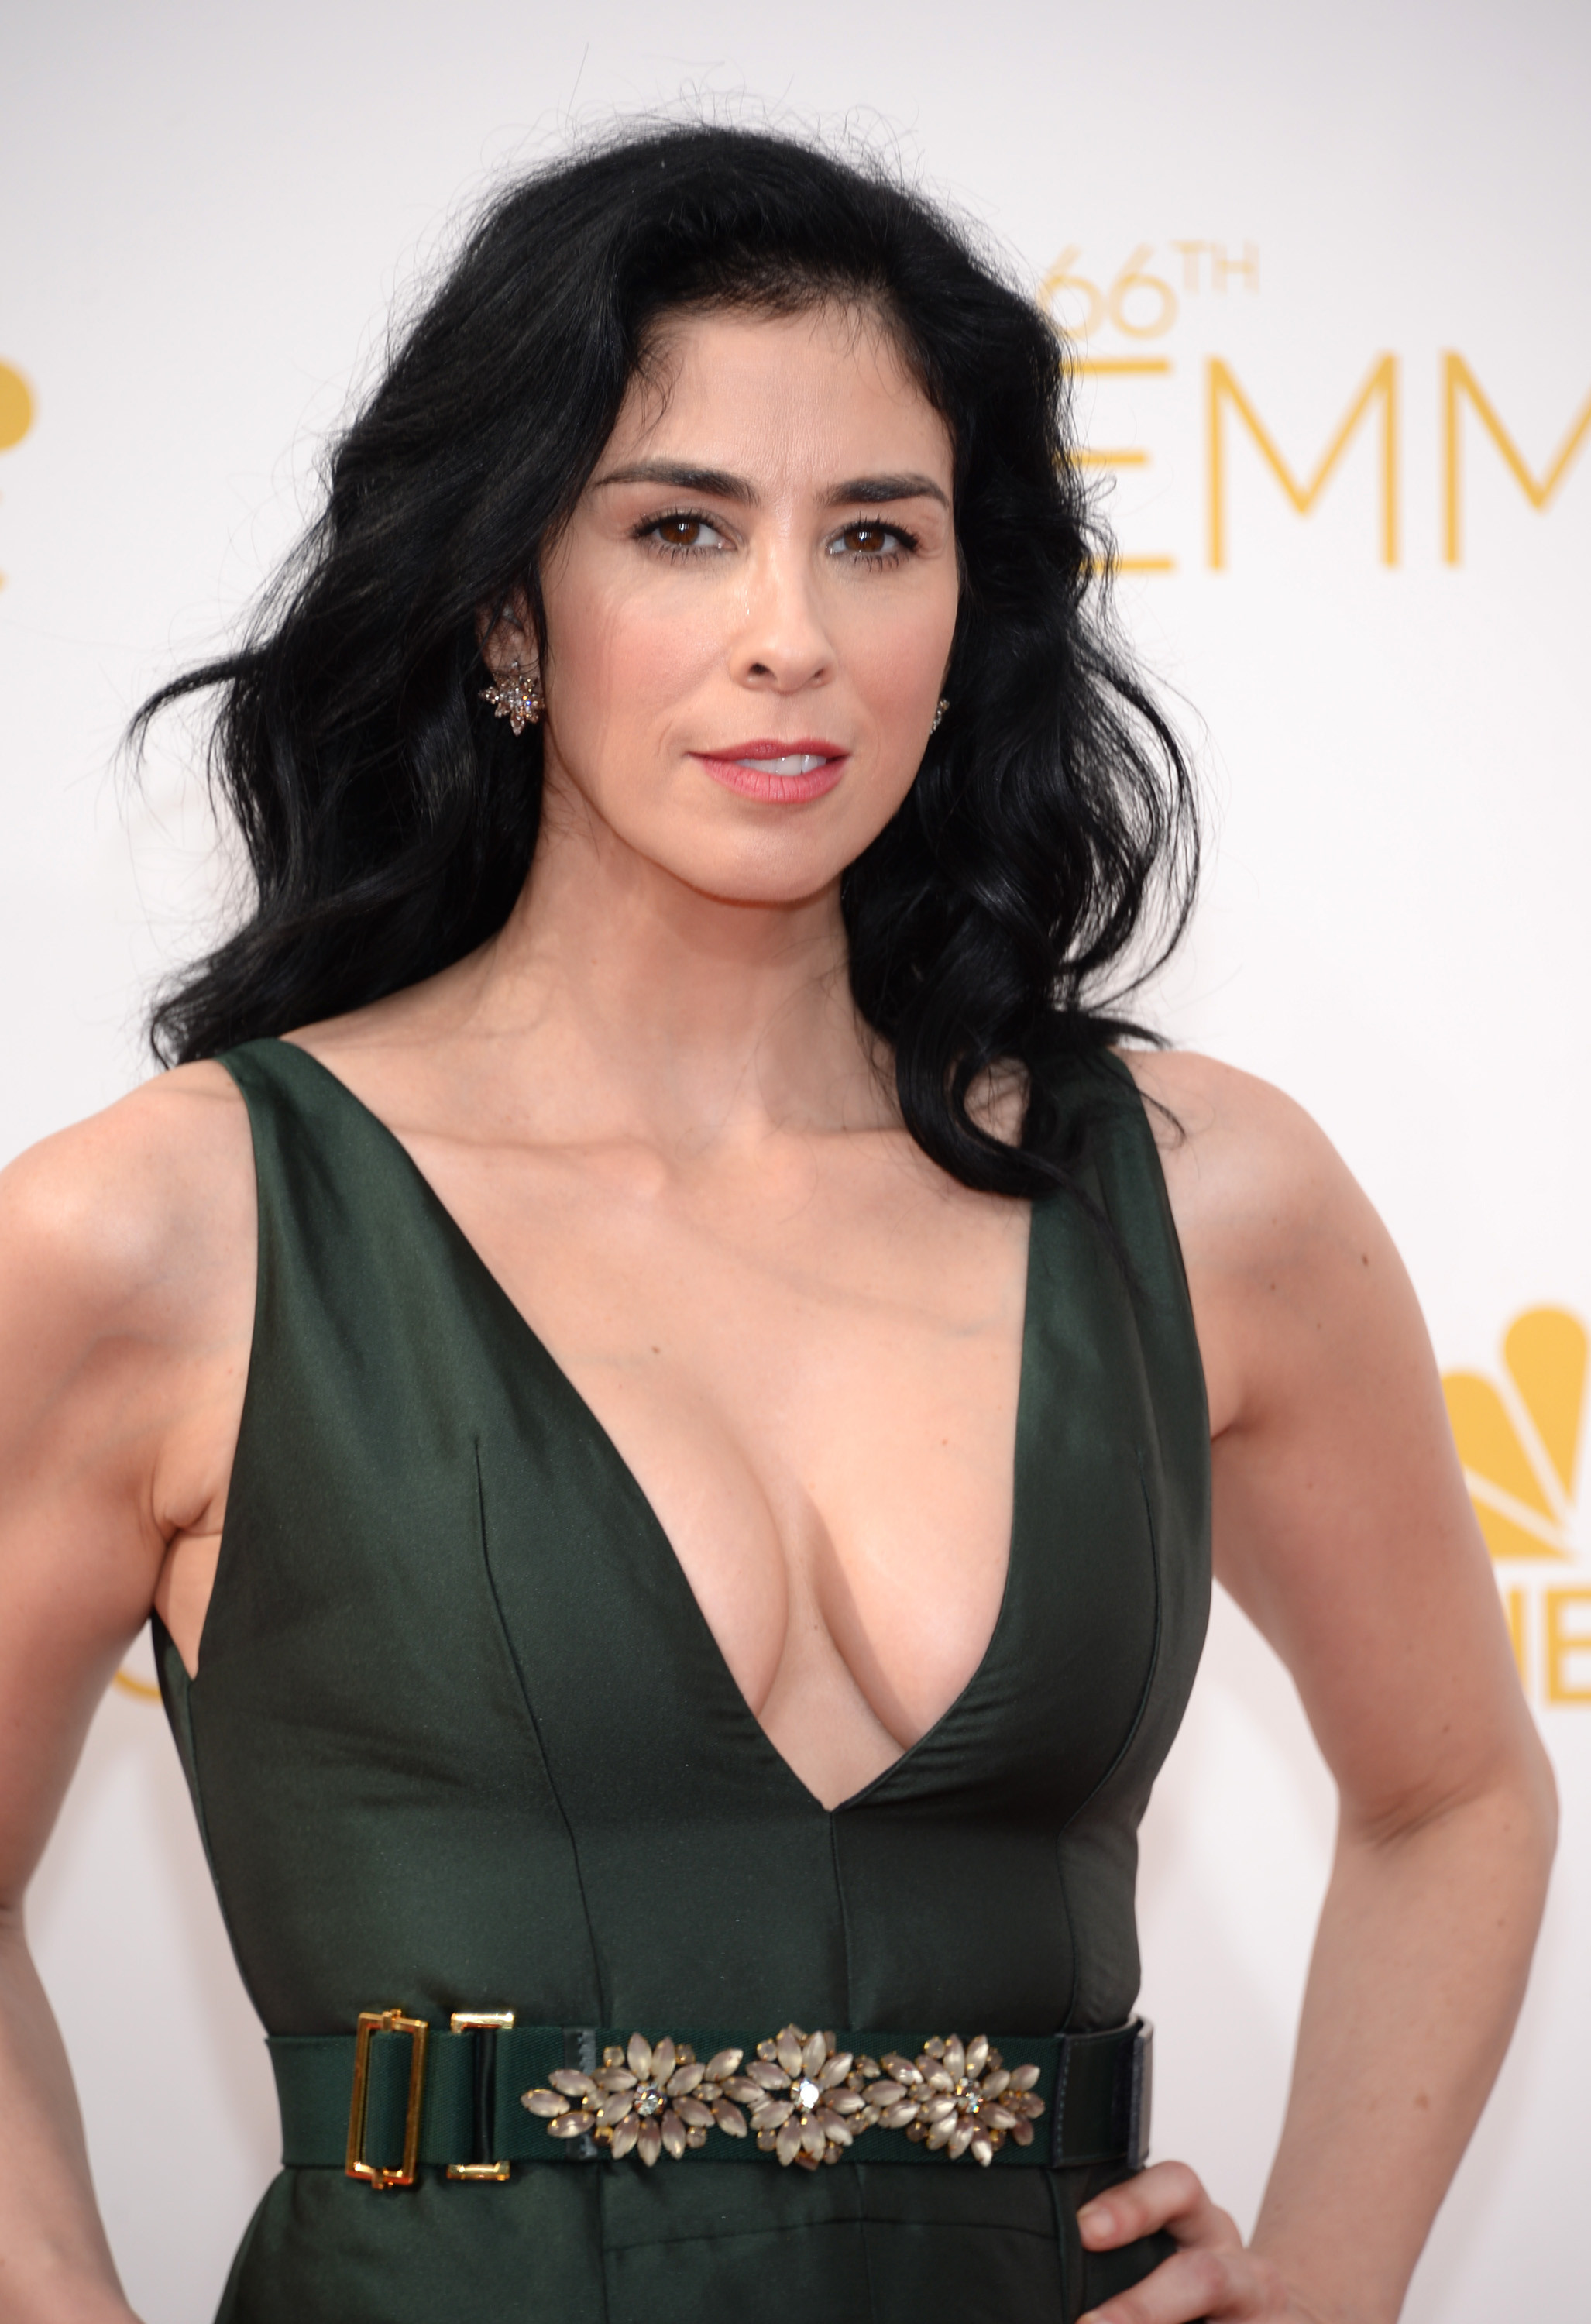 How tall is Sarah Silverman?